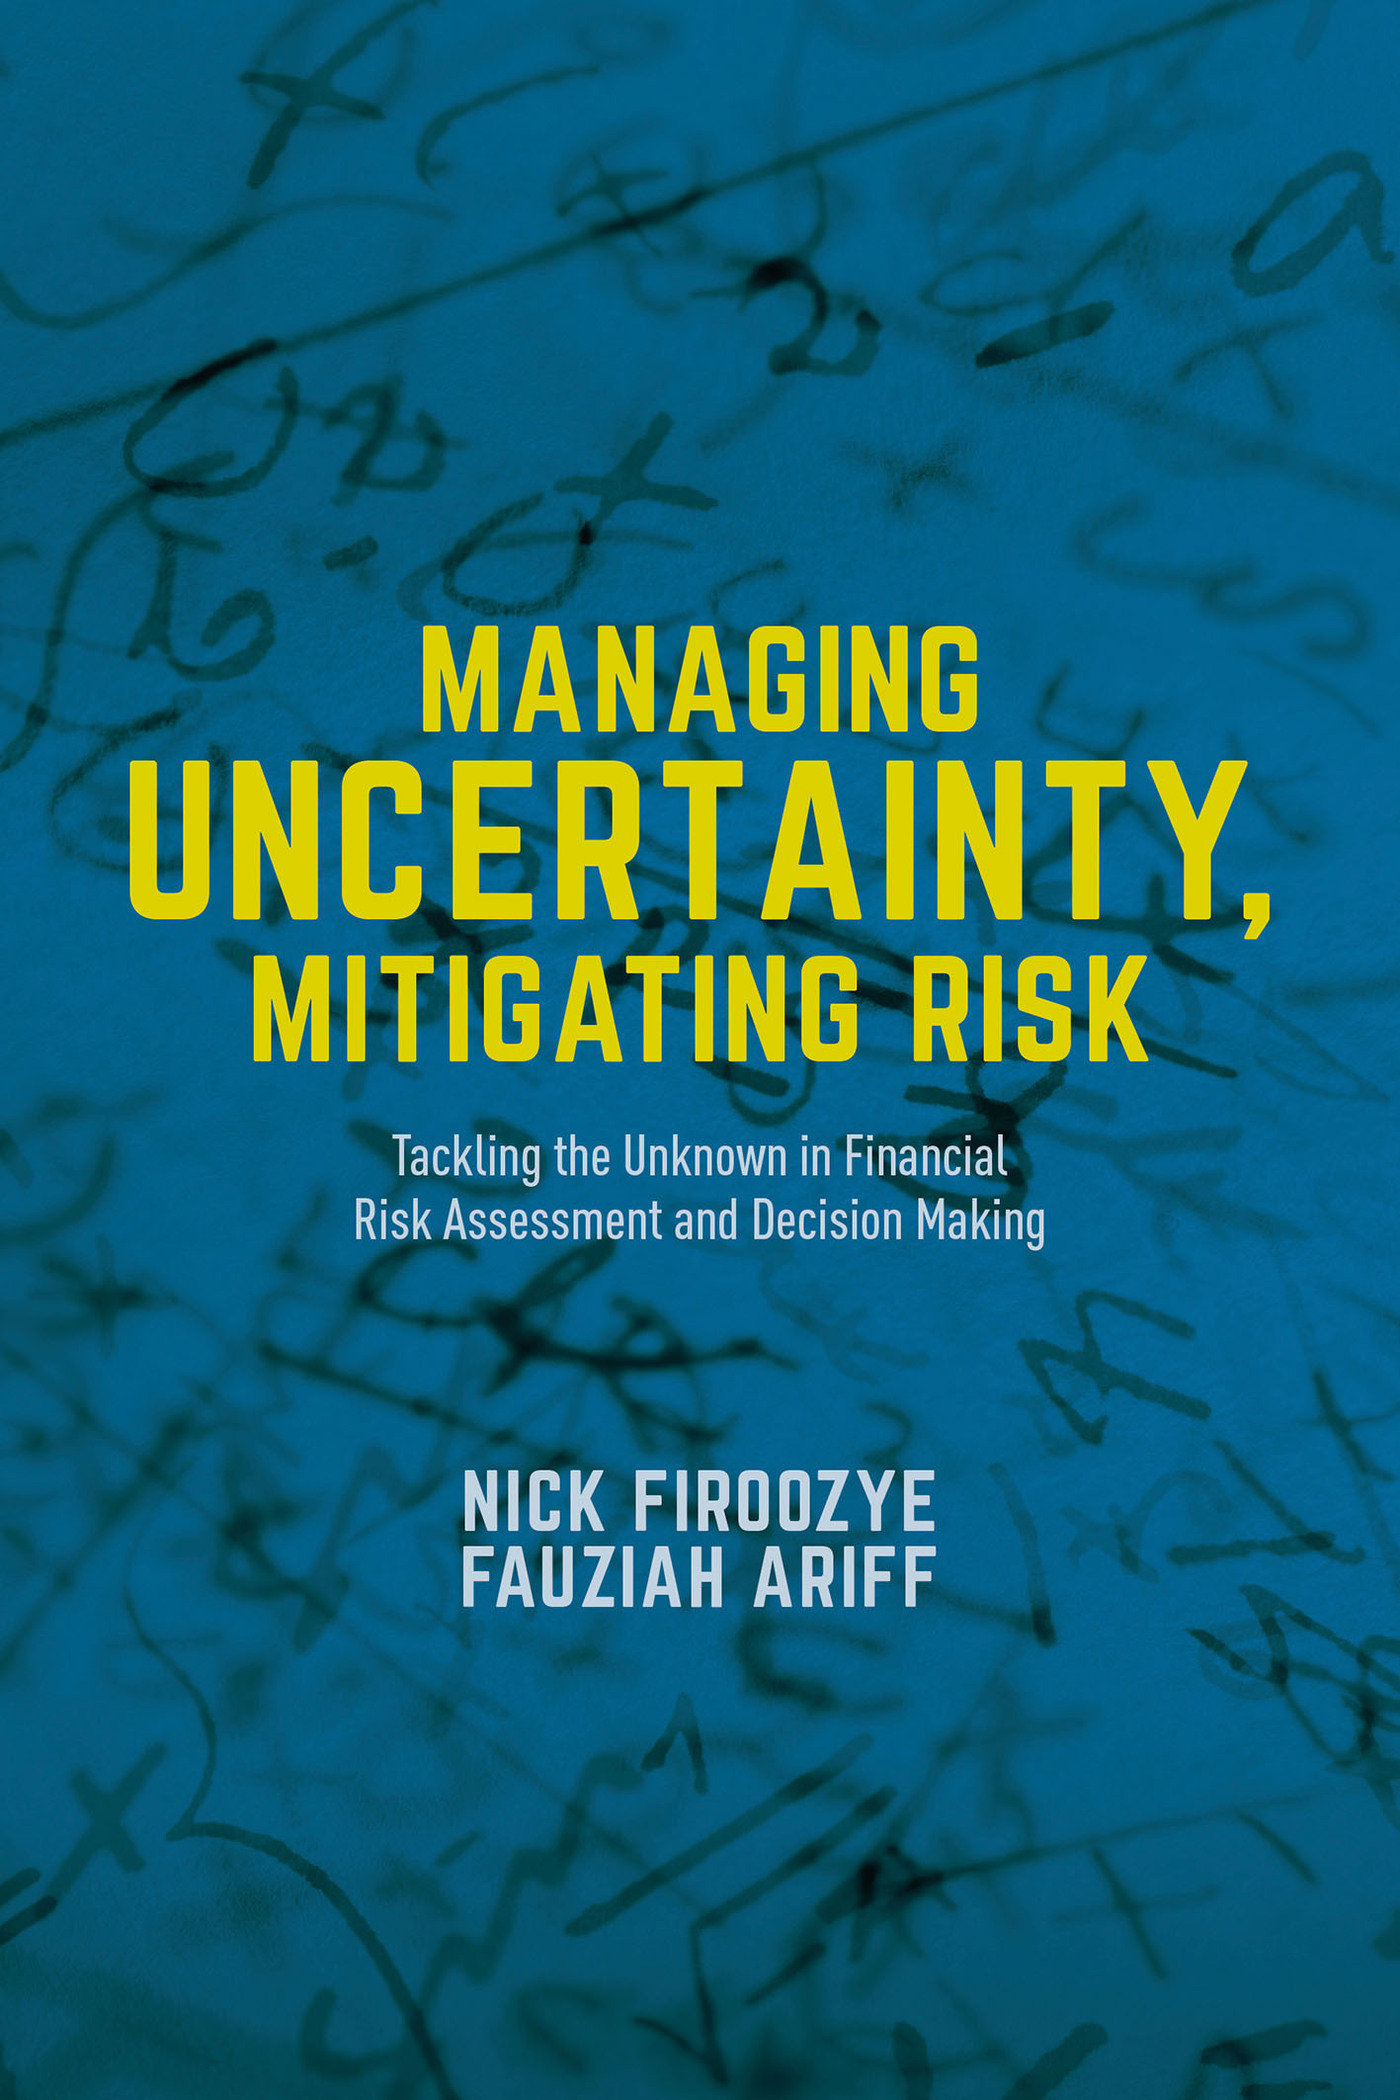 Managing-Uncertainty-Mitigating-Risk-Tackling-the-Unknown-in-Financial-Risk-Assessment-and-Decision-Making